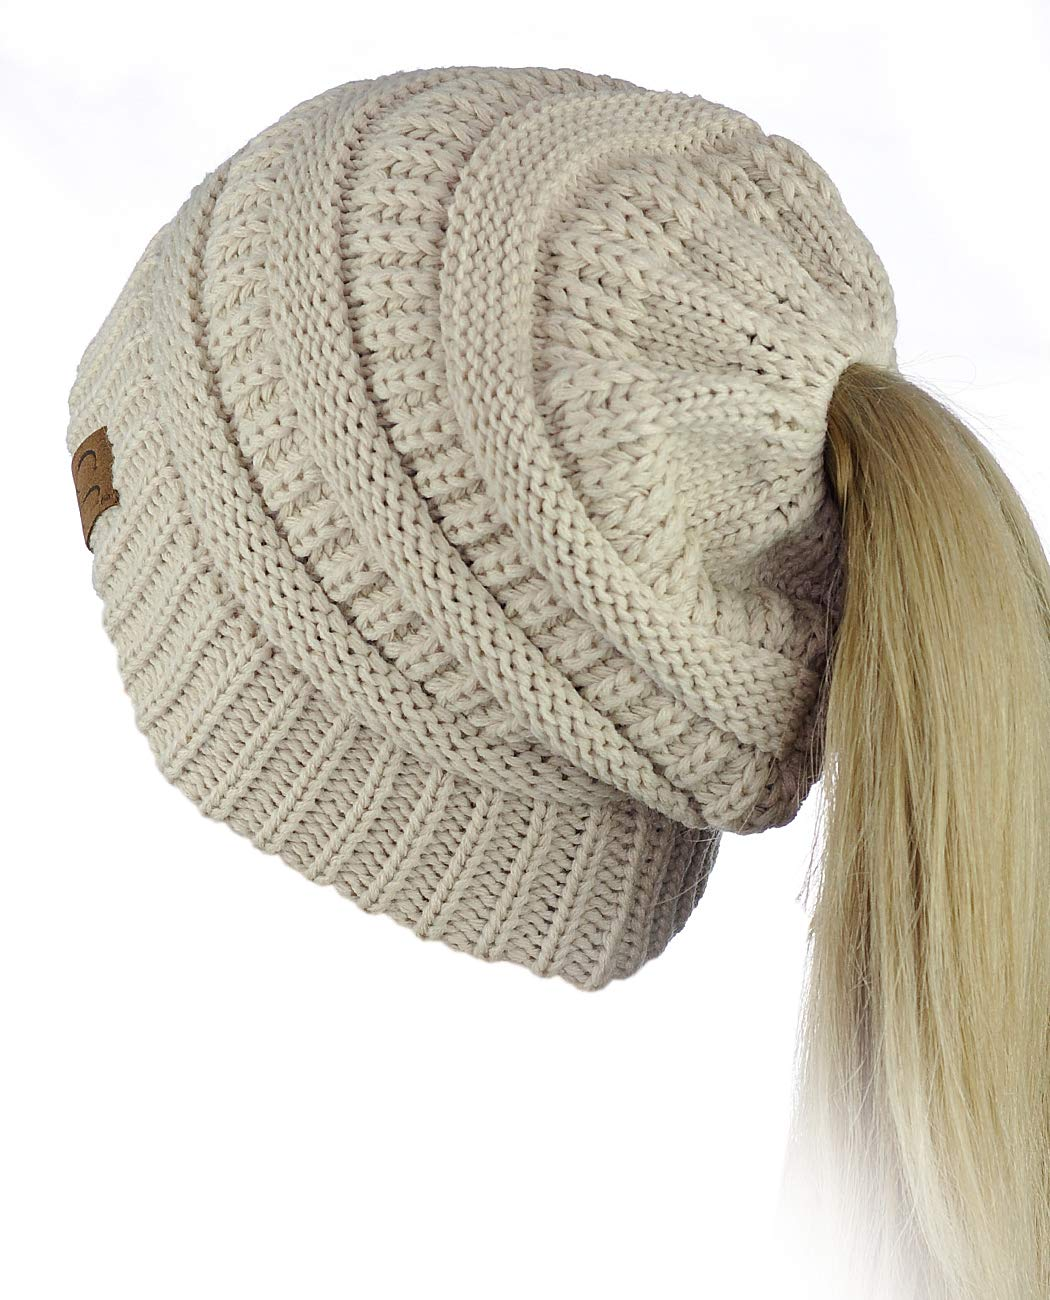 C.C BeanieTail Soft Stretch Cable Knit Messy High Bun Ponytail Beanie Hat, Beige